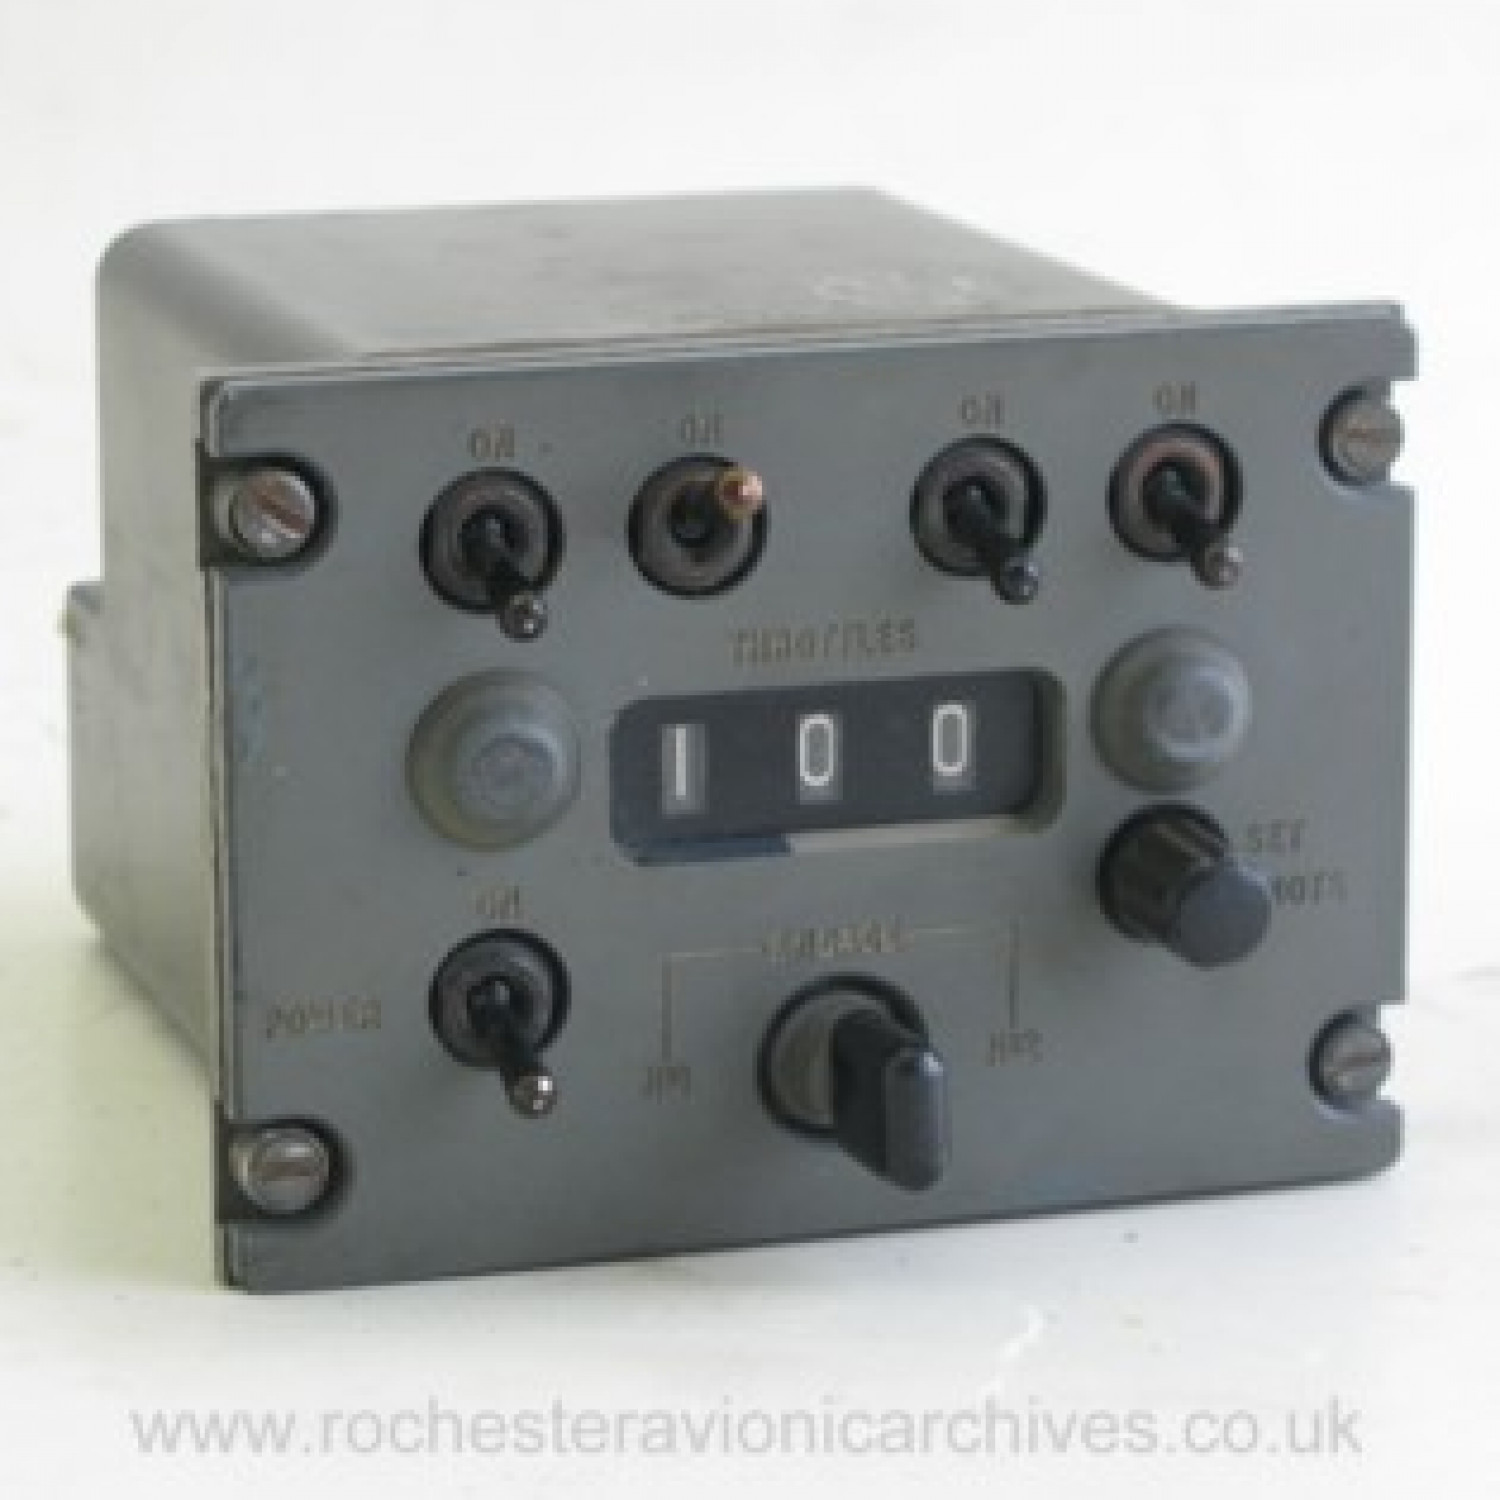 VC10 Autothrottle Control Unit